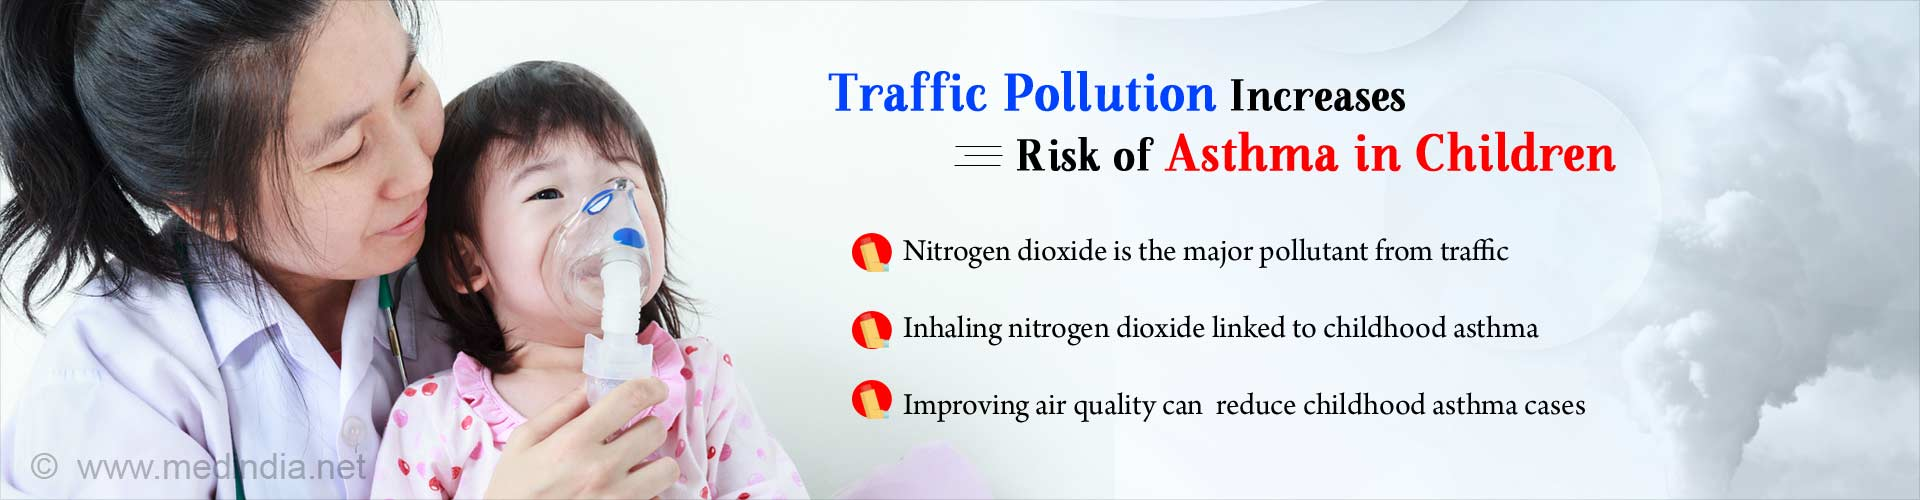 Traffic pollution increases risk of asthma in children. Nitrogen dioxide is the major pollutant from traffic. Inhaling nitrogen dioxide linked to childhood asthma. Improving air quality can reduce childhood asthma cases.